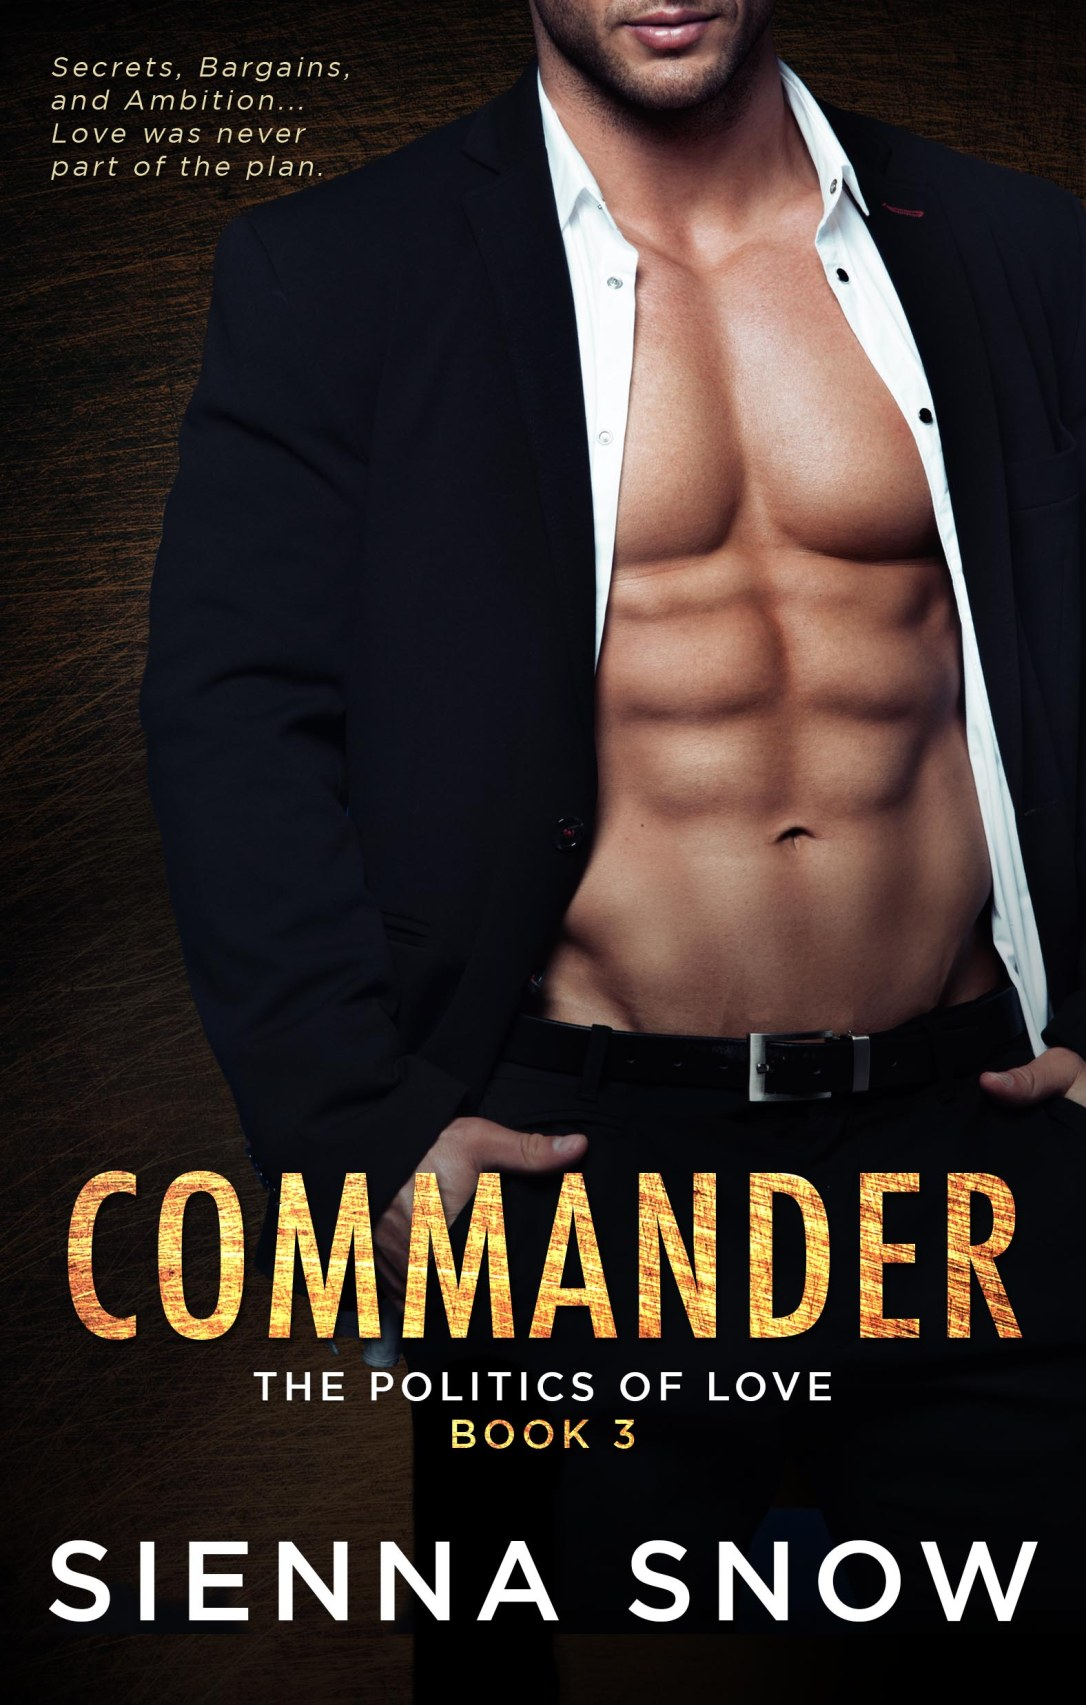 Commander from Sienna Snow is on sale now for just 99 cents